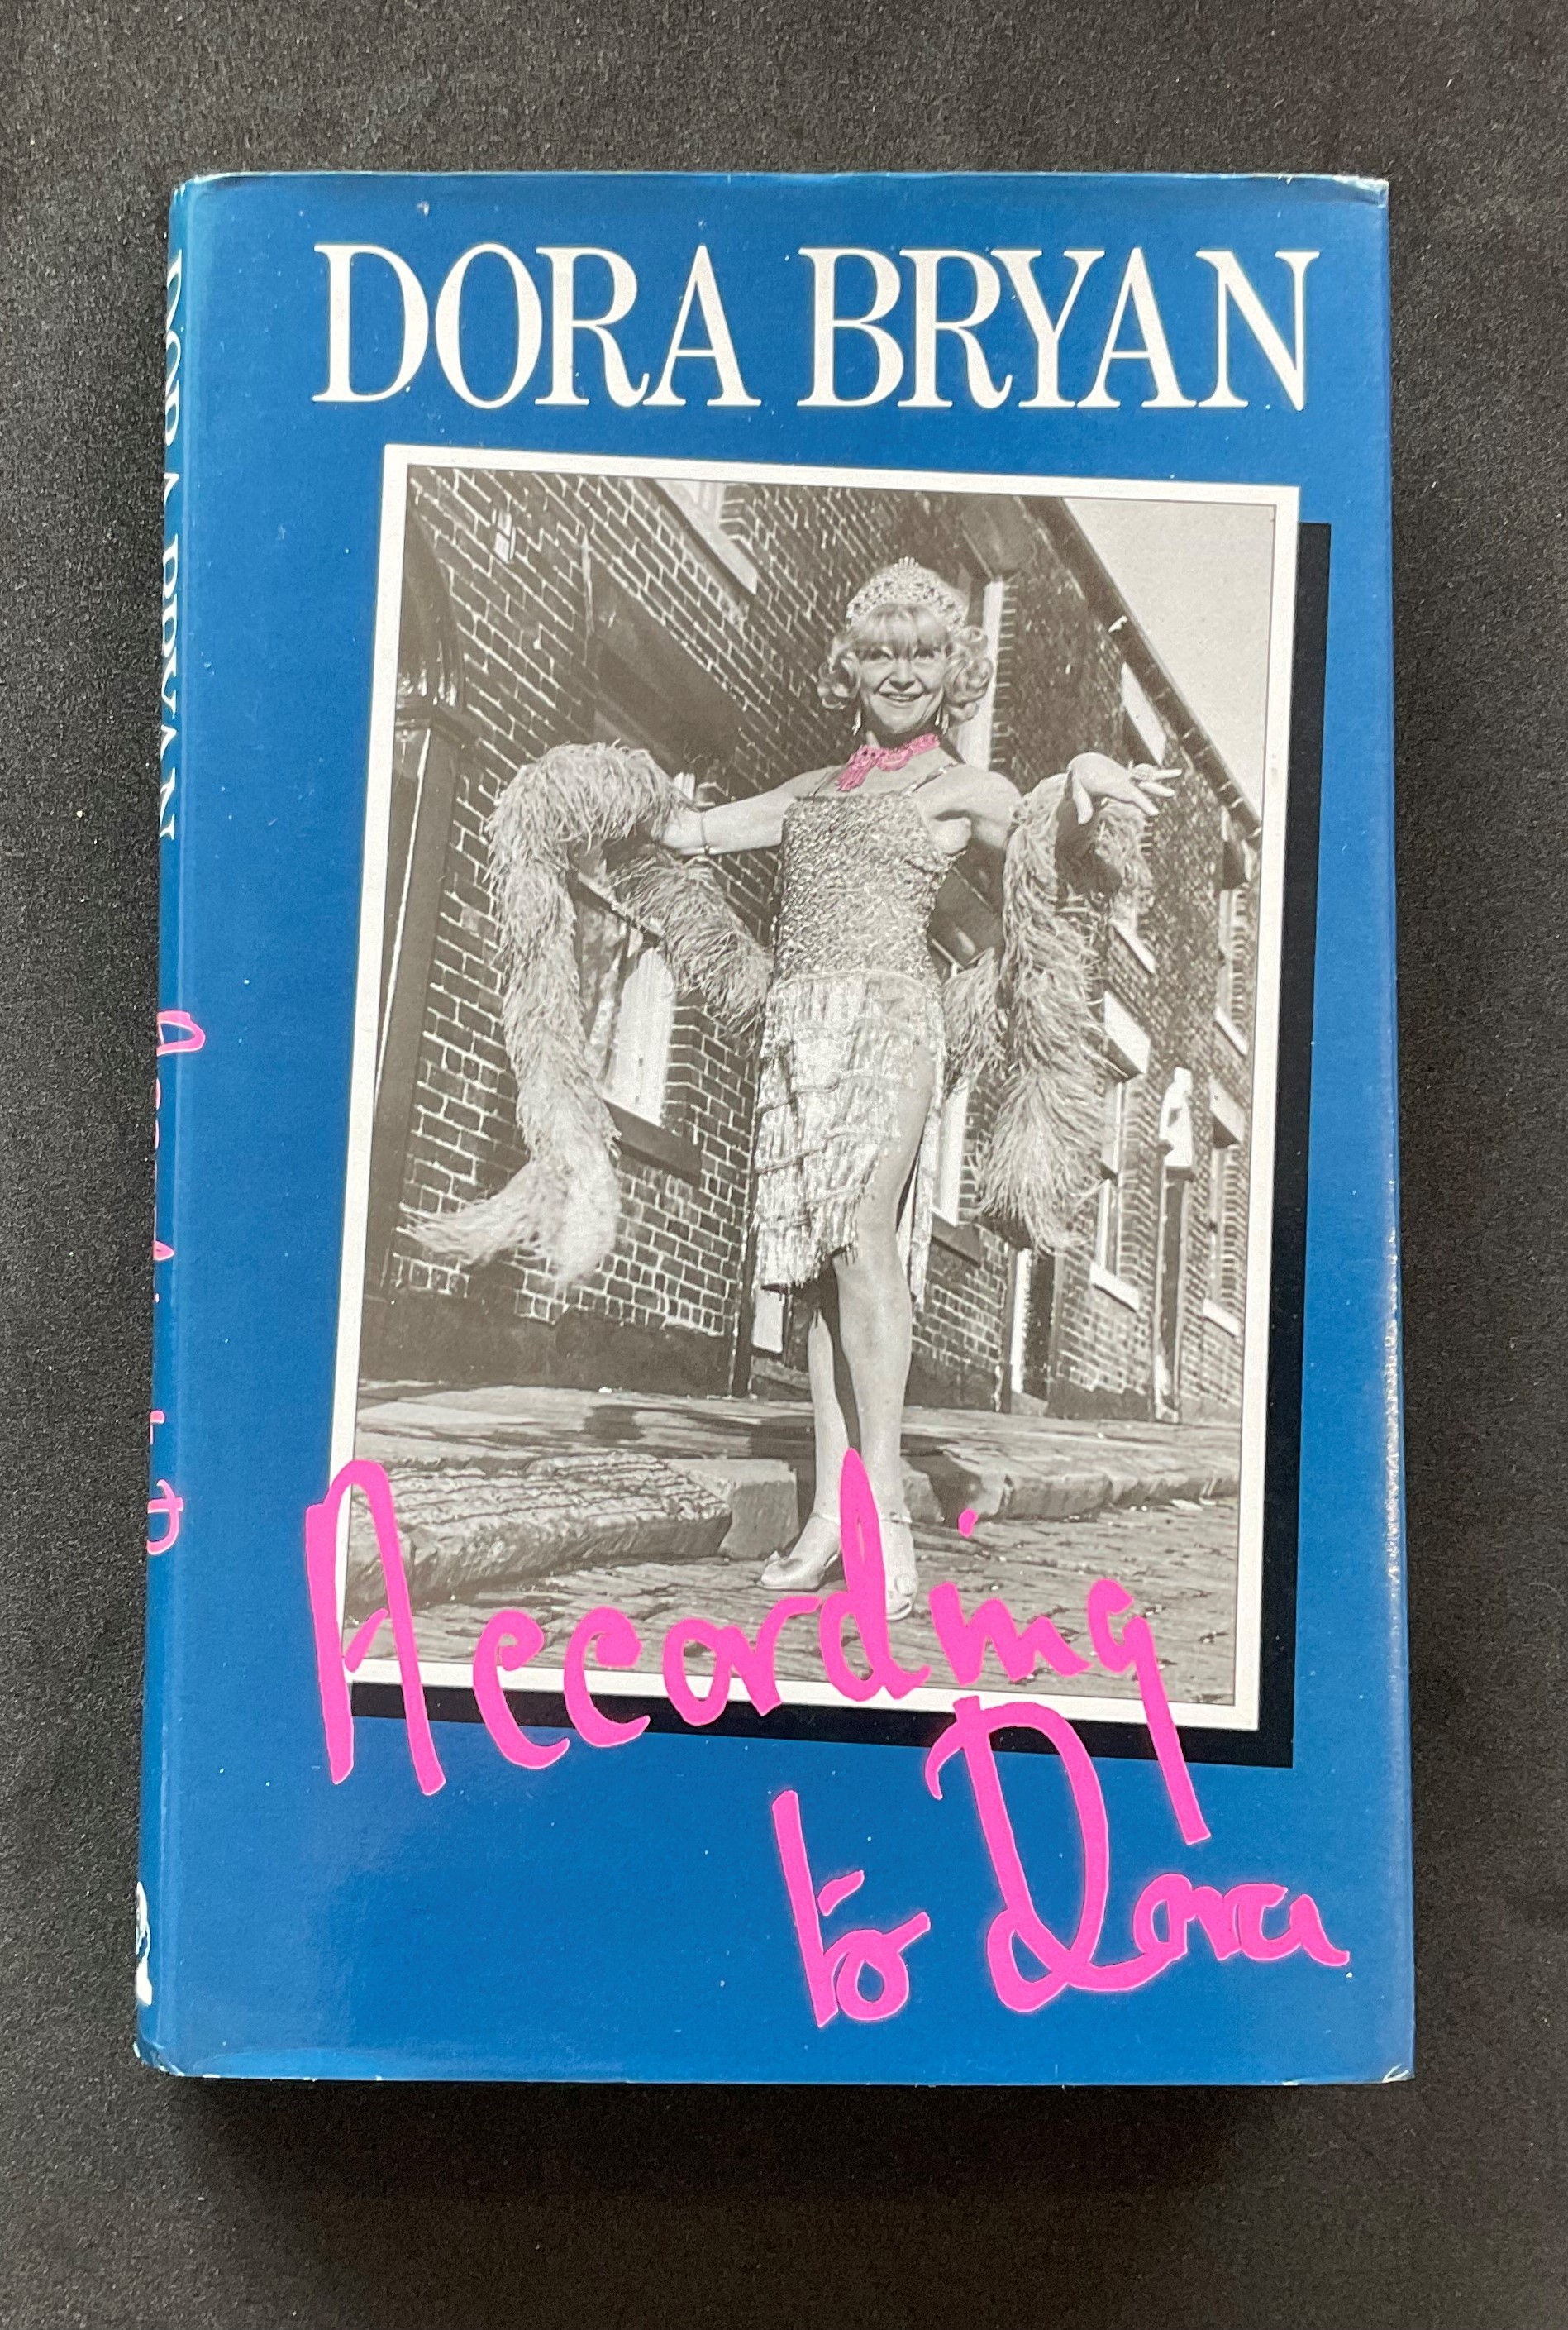 Actress Dora Bryans autobiography According to Dora, with nice inscription on the first page